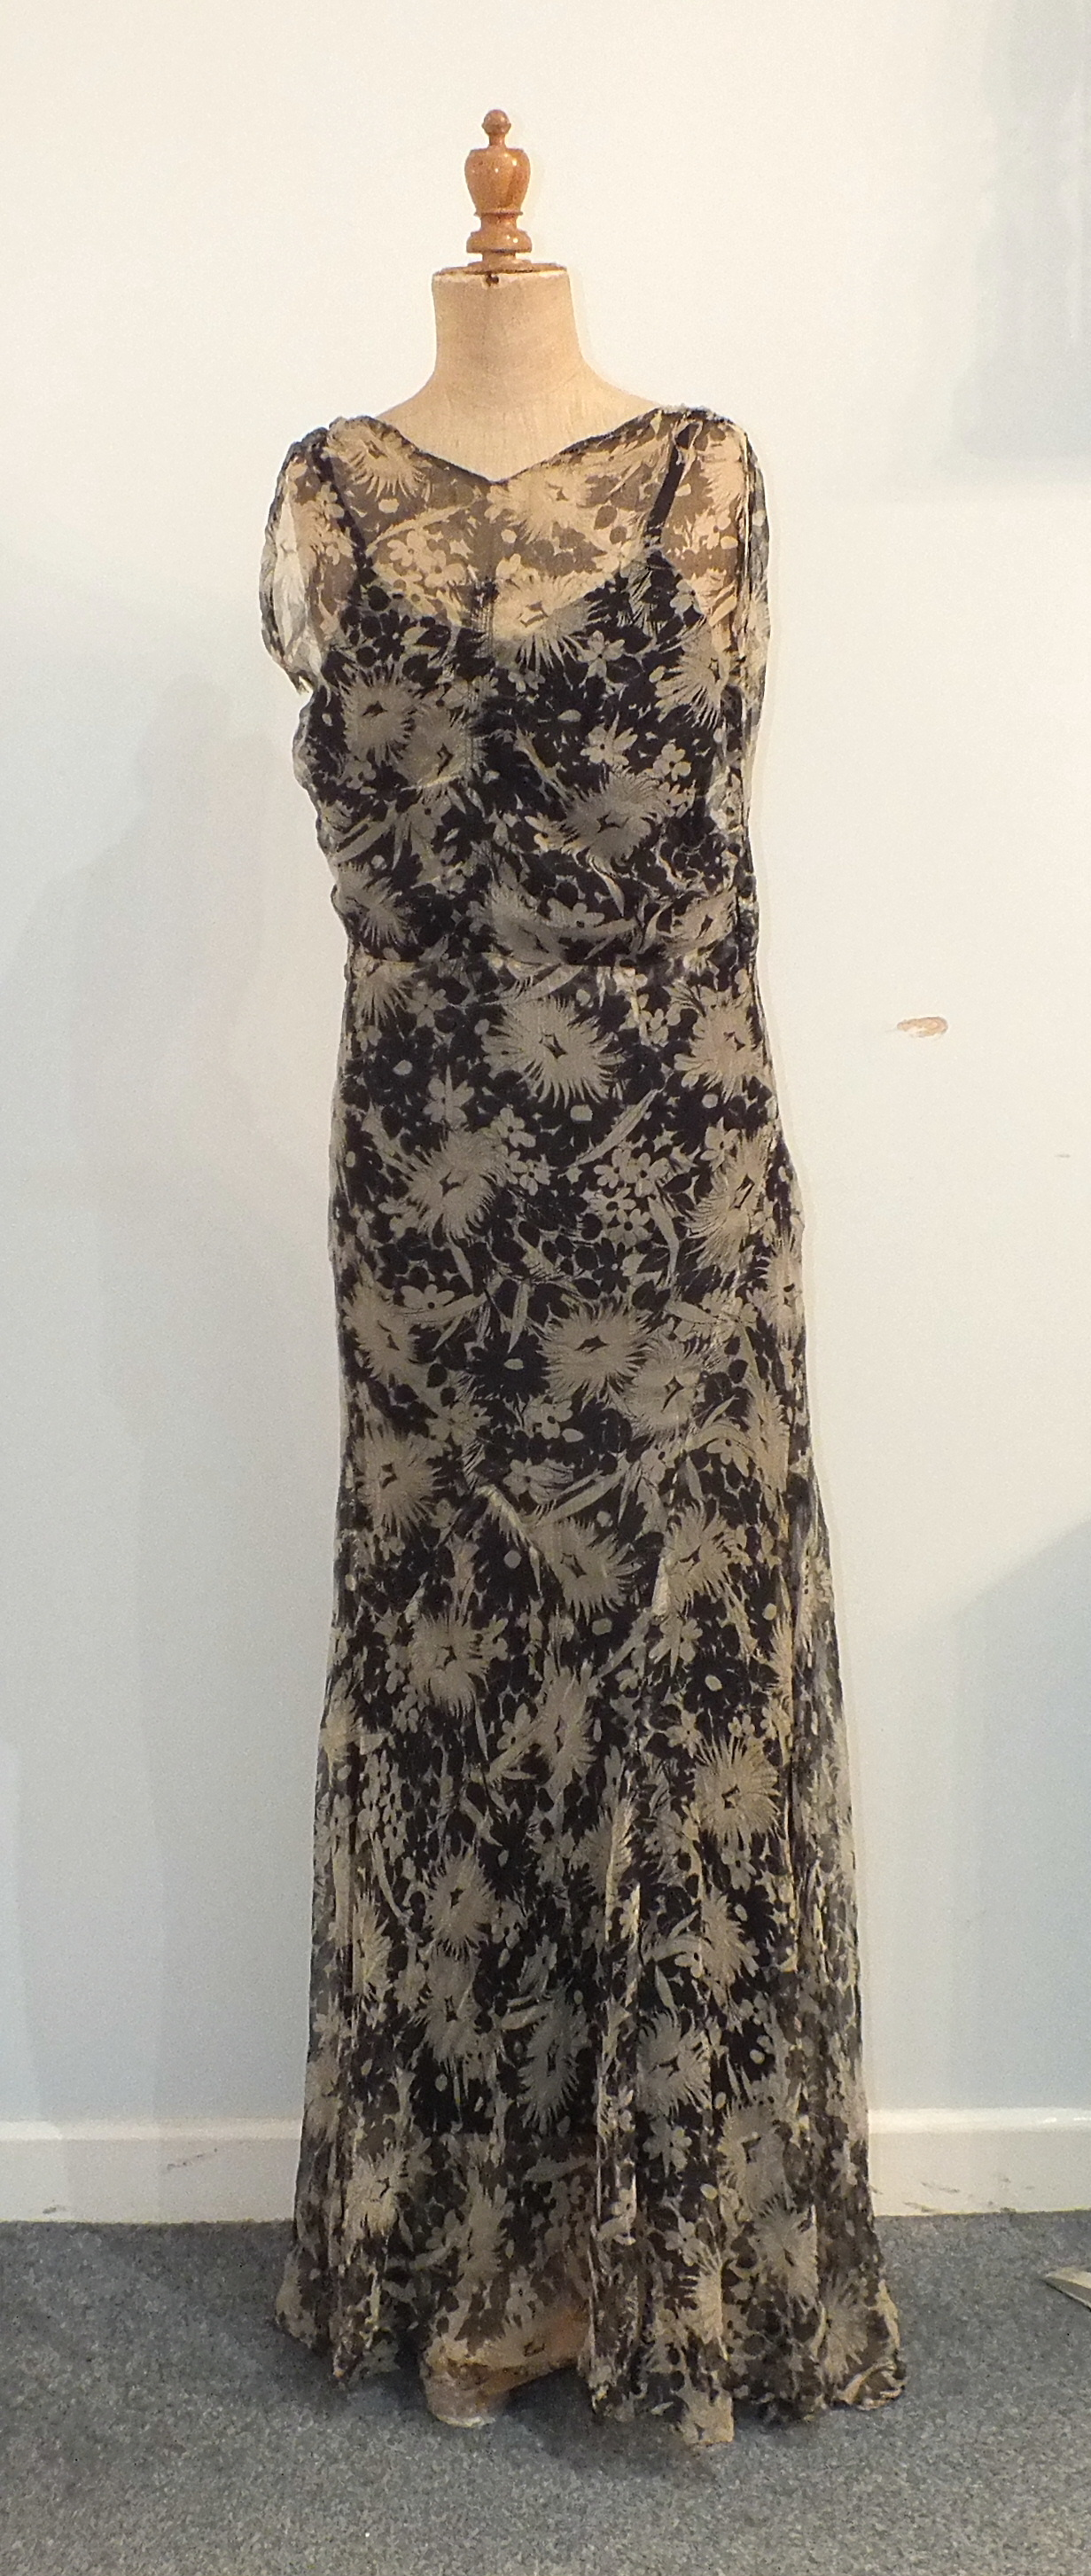 Five 1930's/1940's evening dresses including a black and white printed silk chiffon dress with black